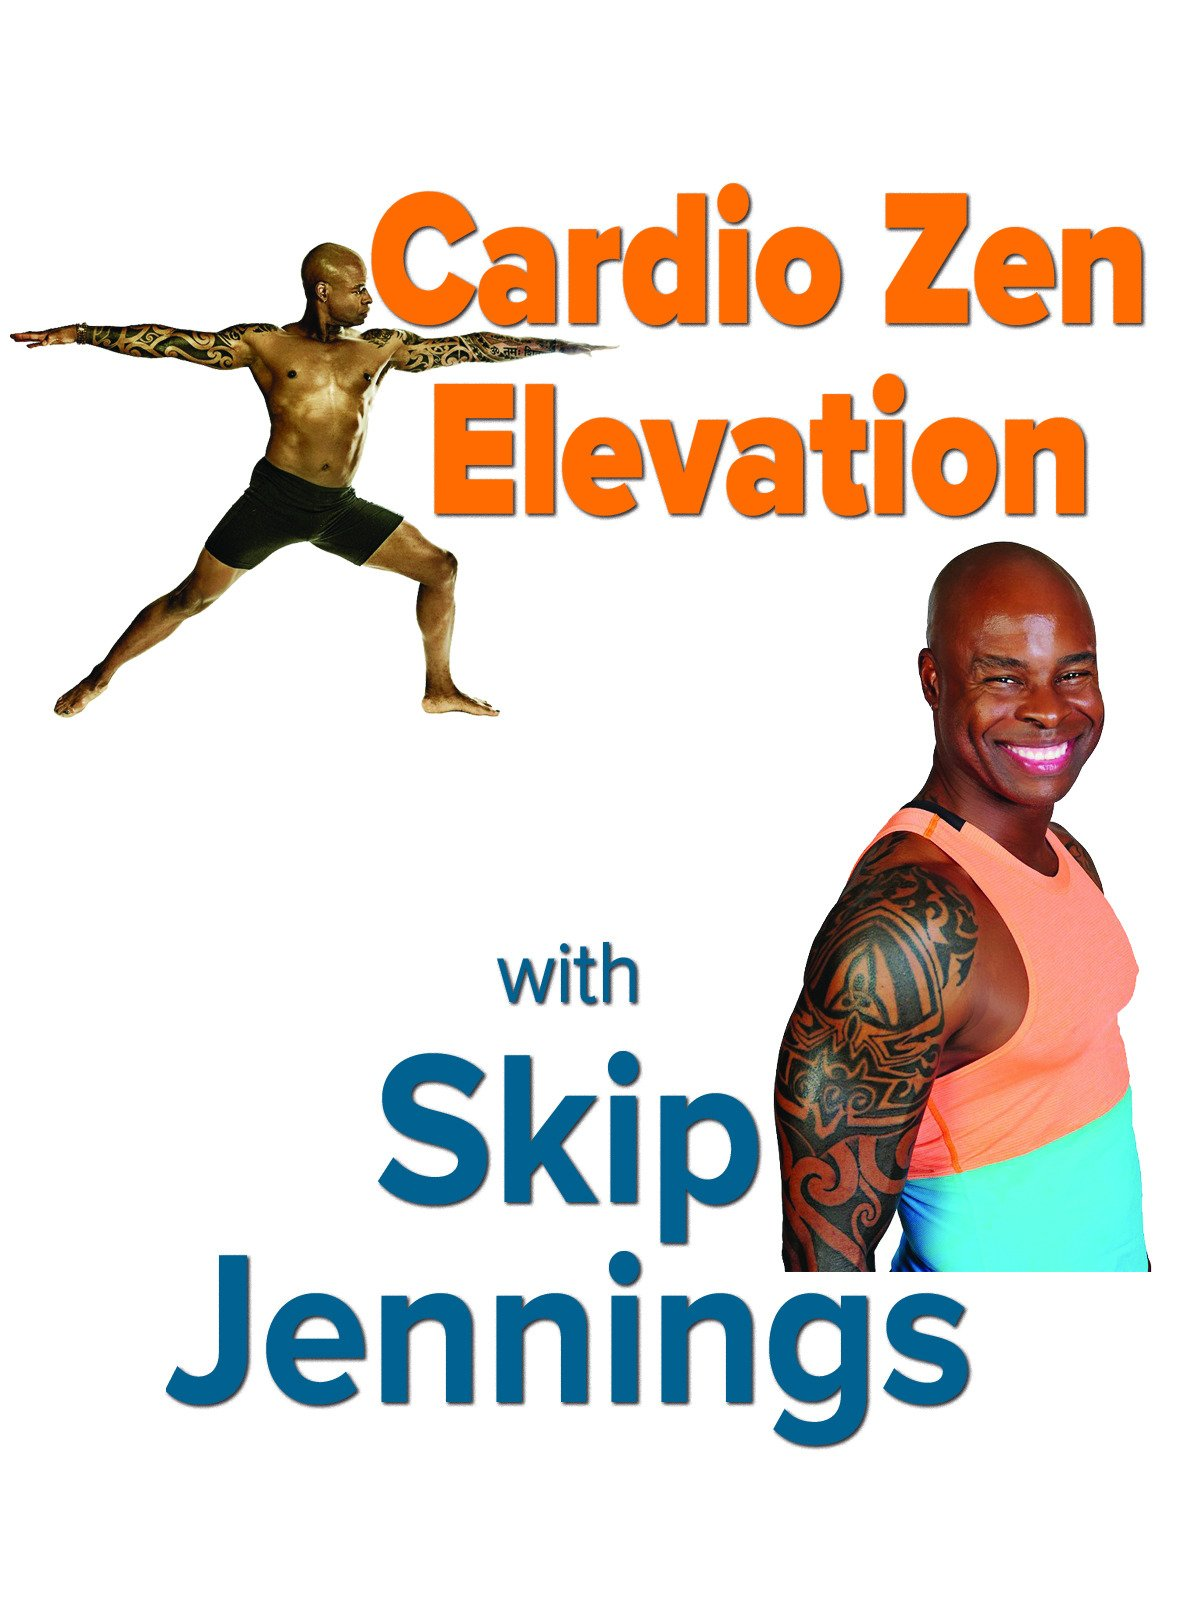 Cardio Zen Elevation with Skip Jennings